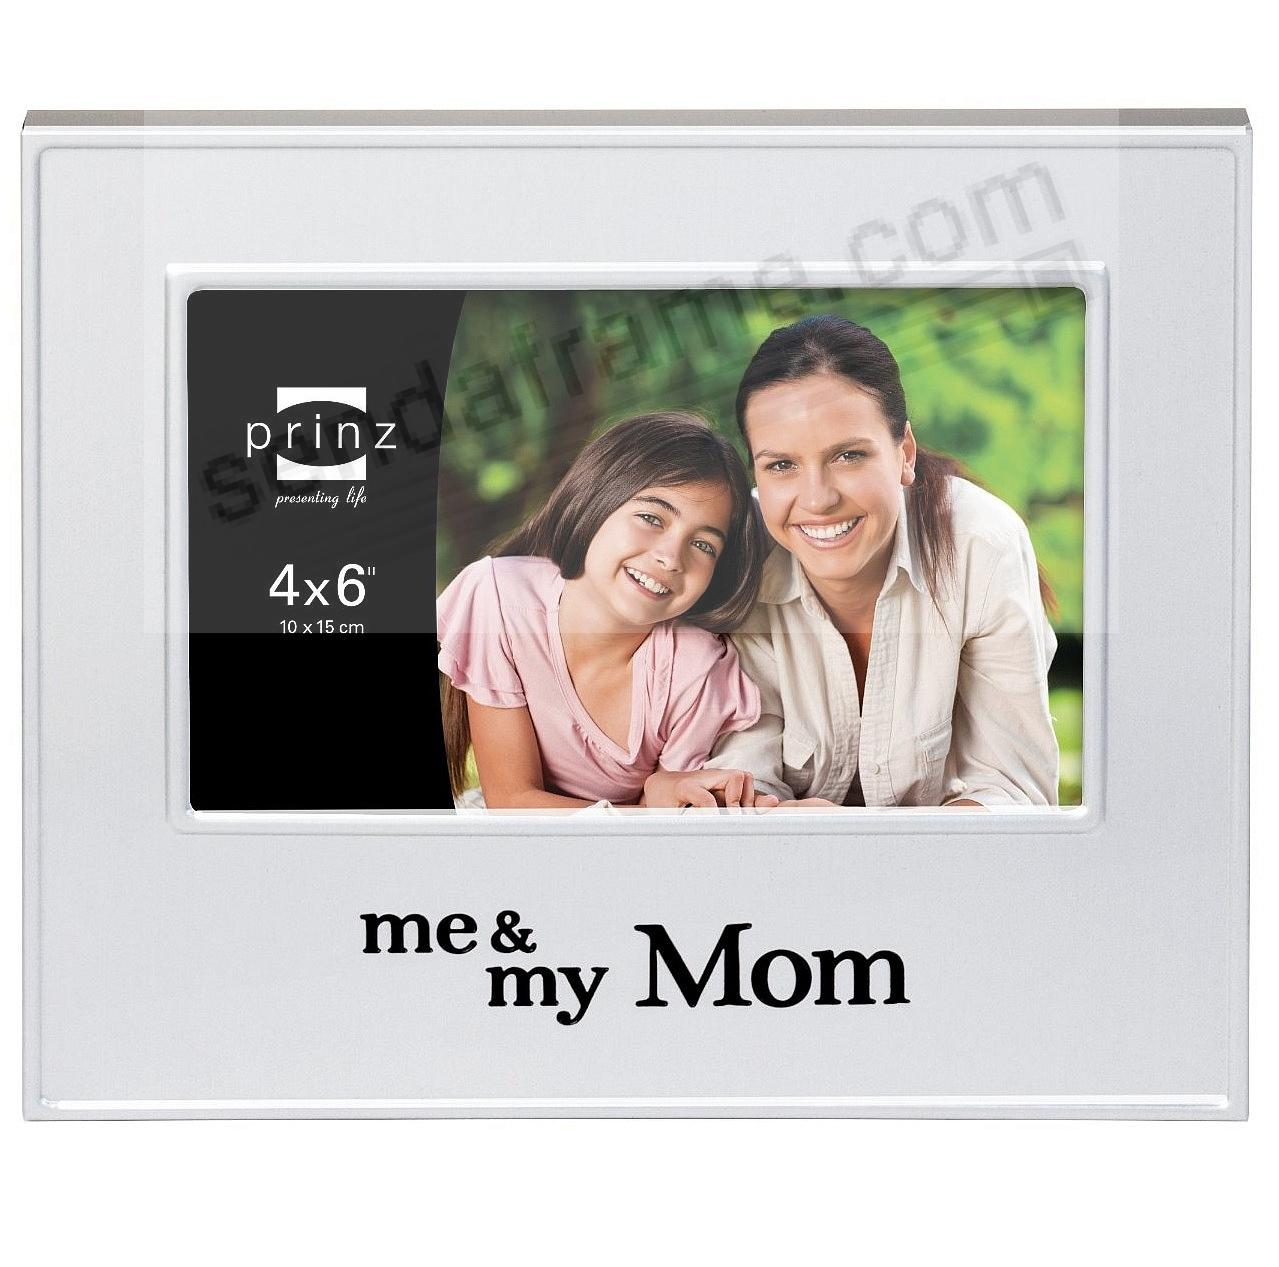 ME & MY MOM Brushed Silver 6x4 frame by Prinz® - Picture Frames ...